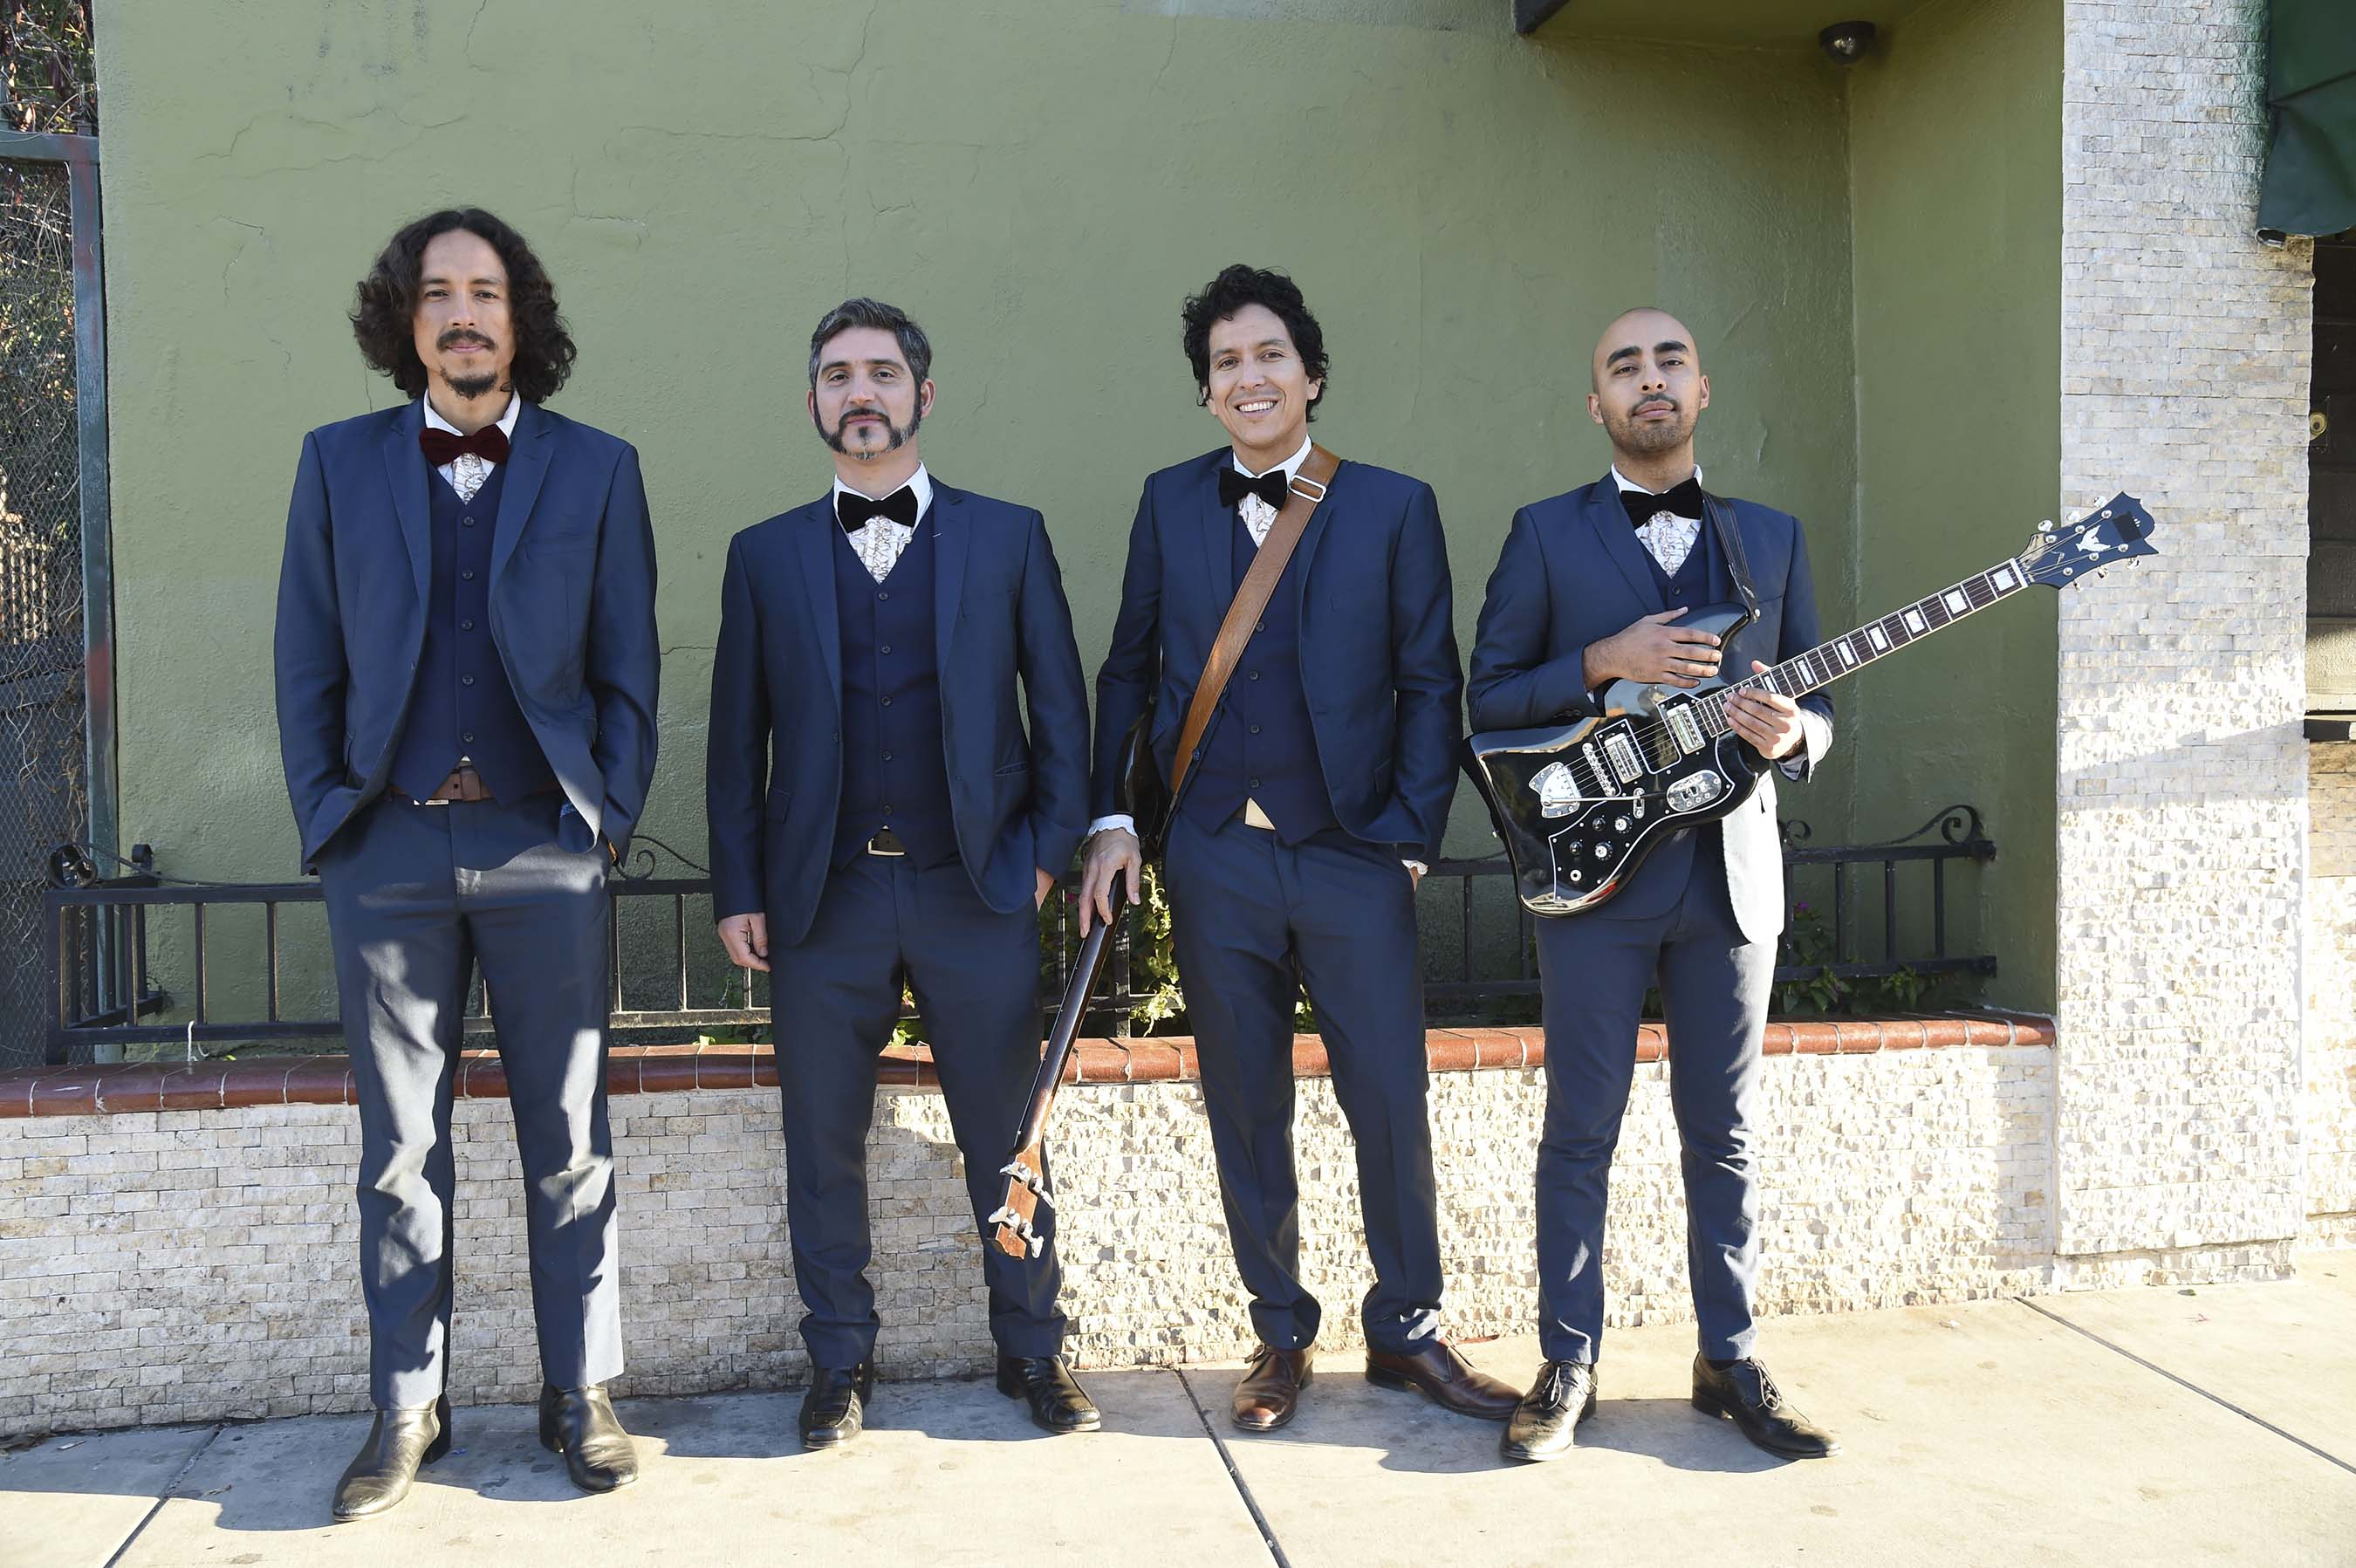 LA-based soul band, Chicano Batman, reinterprets the iconic American anthem, 'This Land Is Your Land,' in support of Johnnie Walker's new Keep Walking America campaign (Michael Kovac/Getty Images).